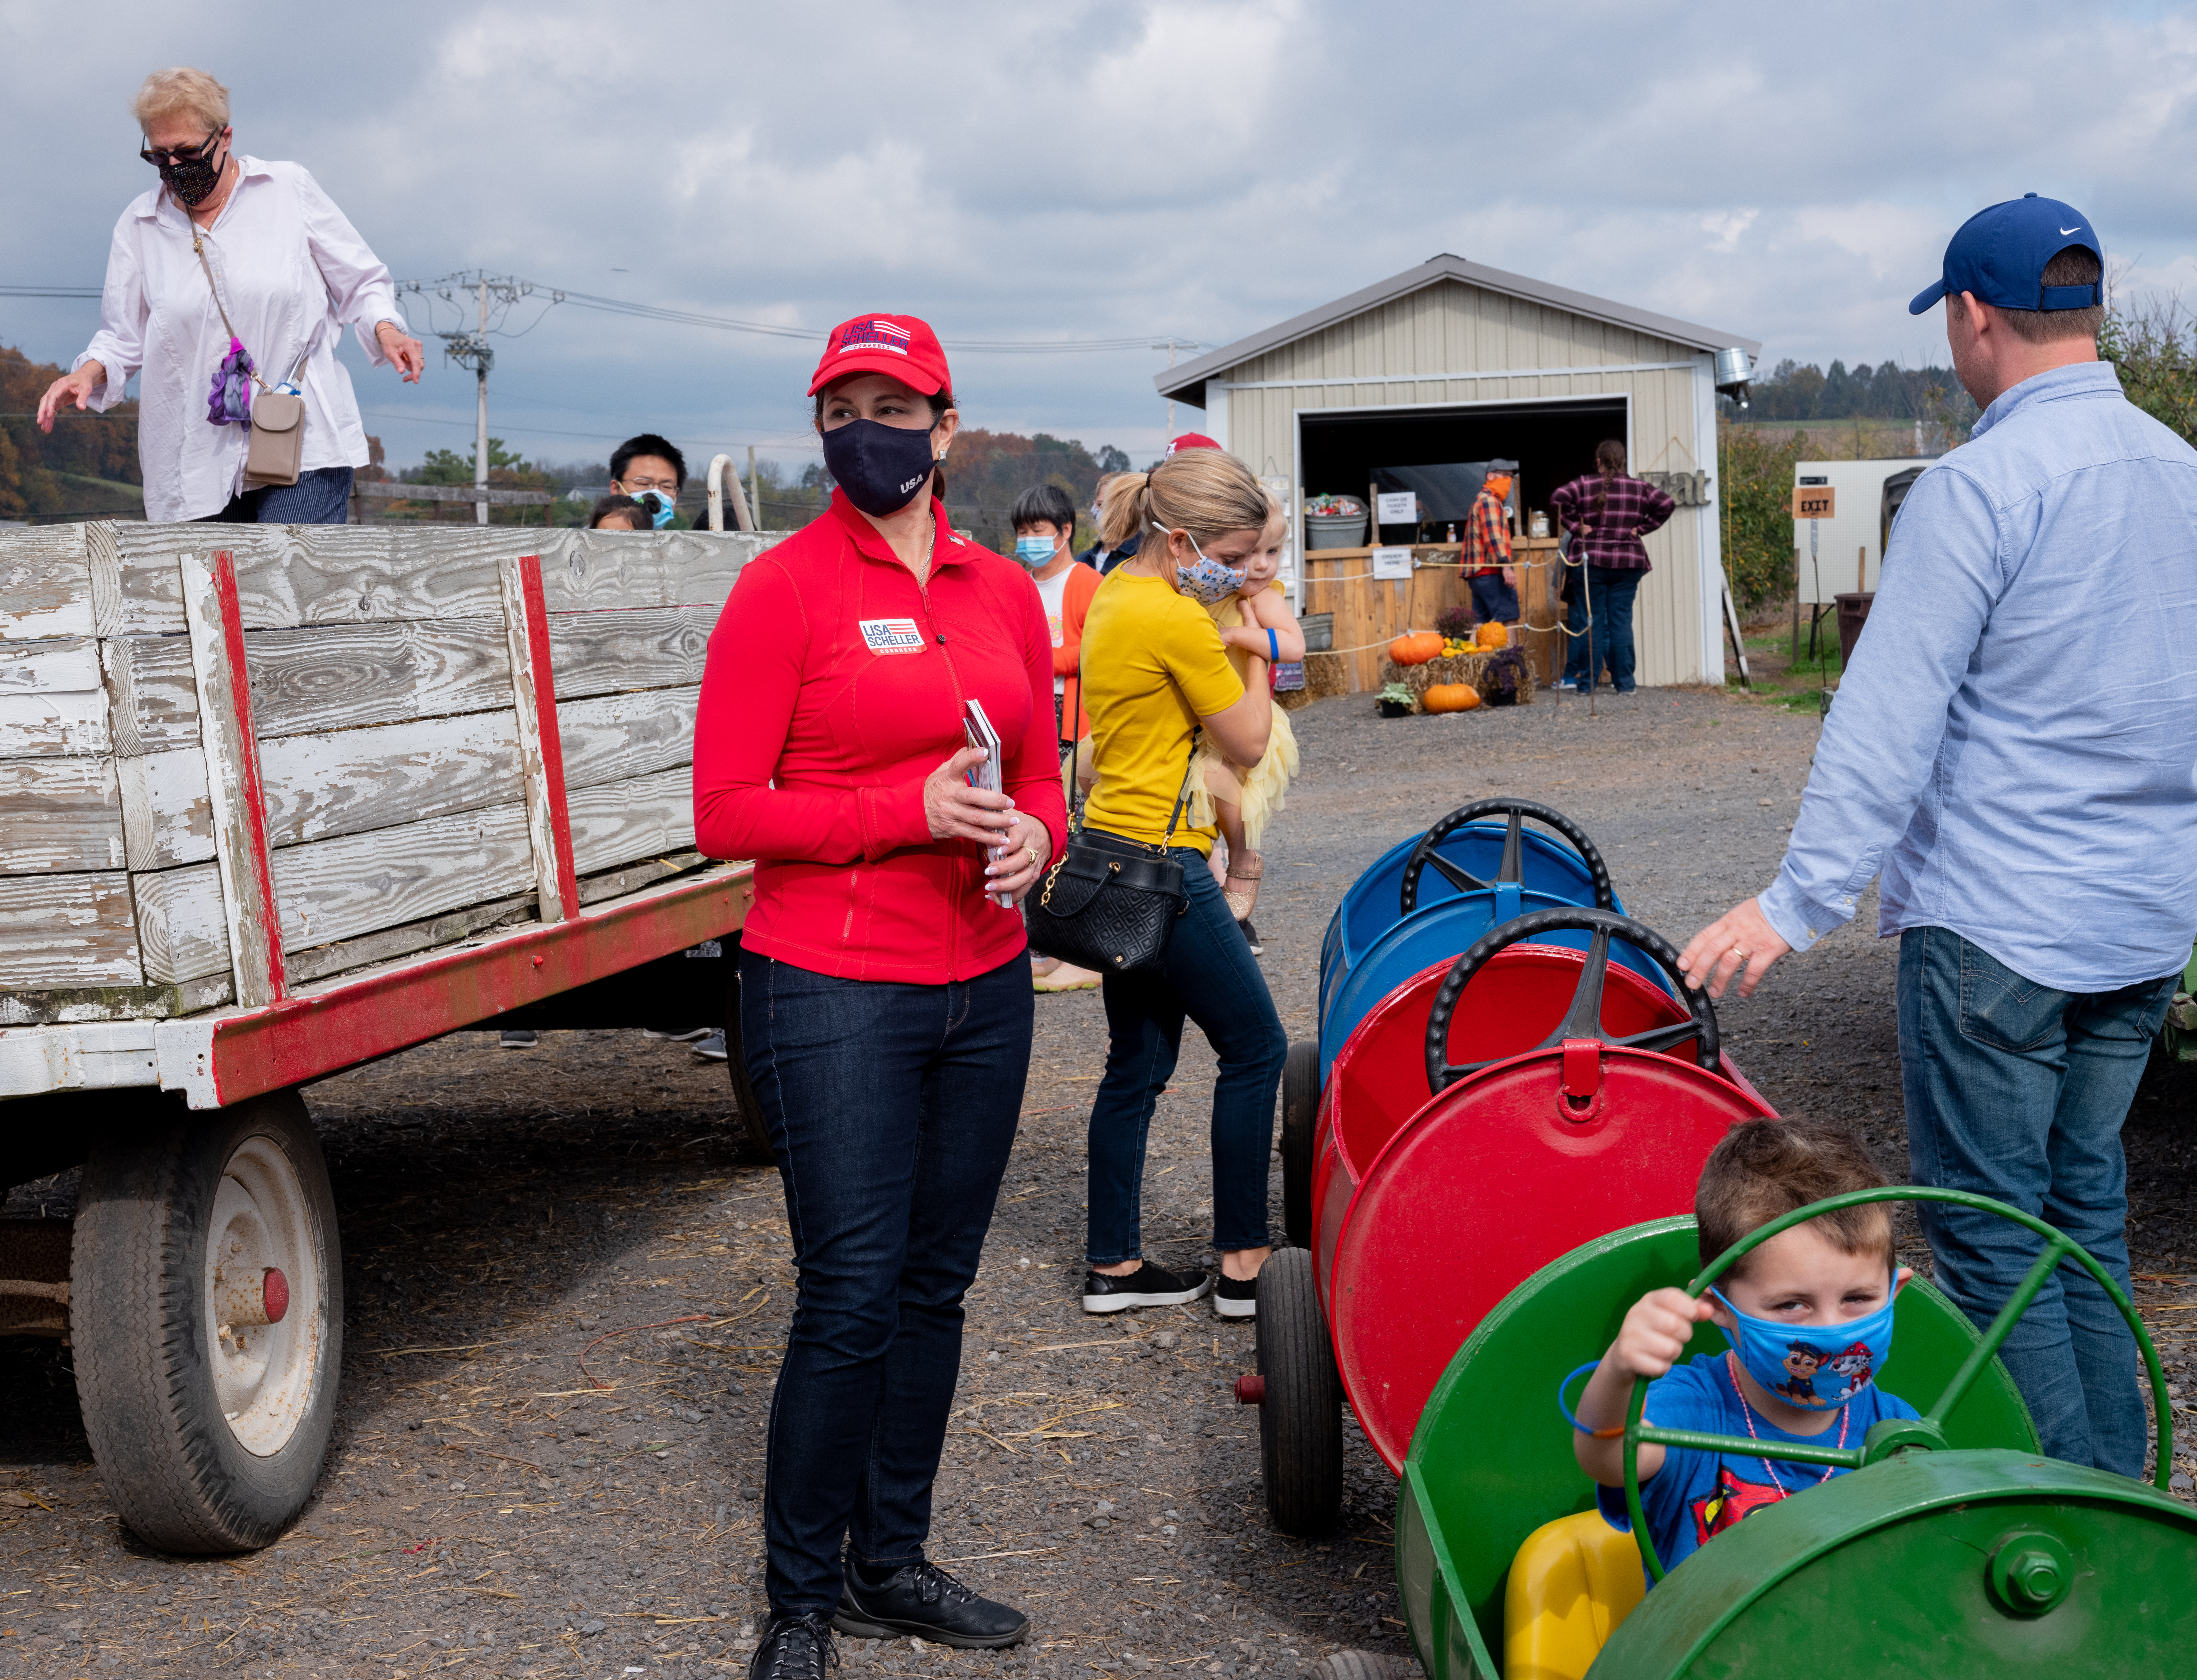 Republican nominee, Lisa Scheller, campaigning at Hausman's Fruit Farm in Allentown, Pa., on Oct. 24, 2020.